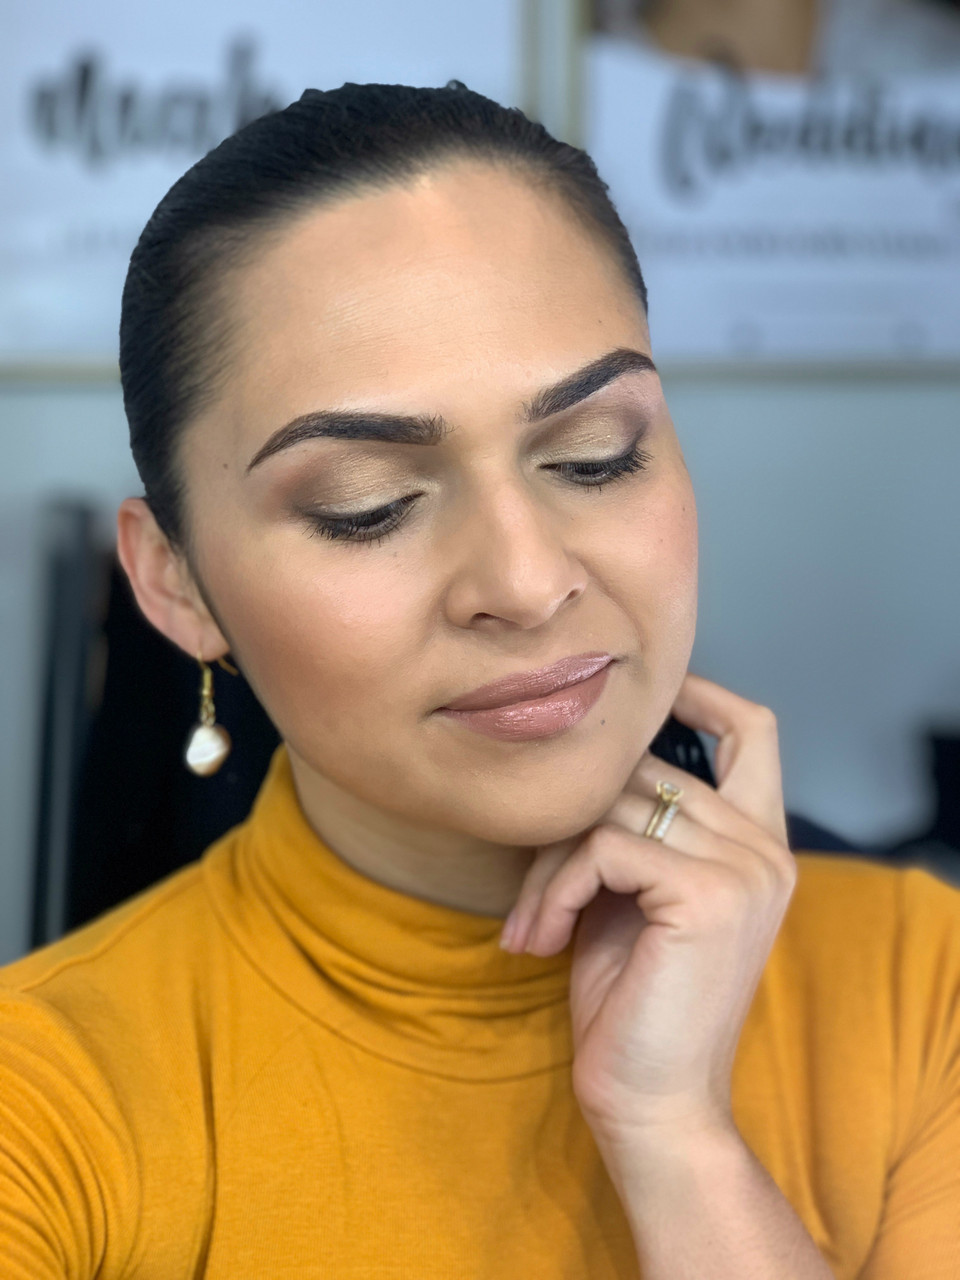 FRIDAY GLAM SESSION: Bronzed work look